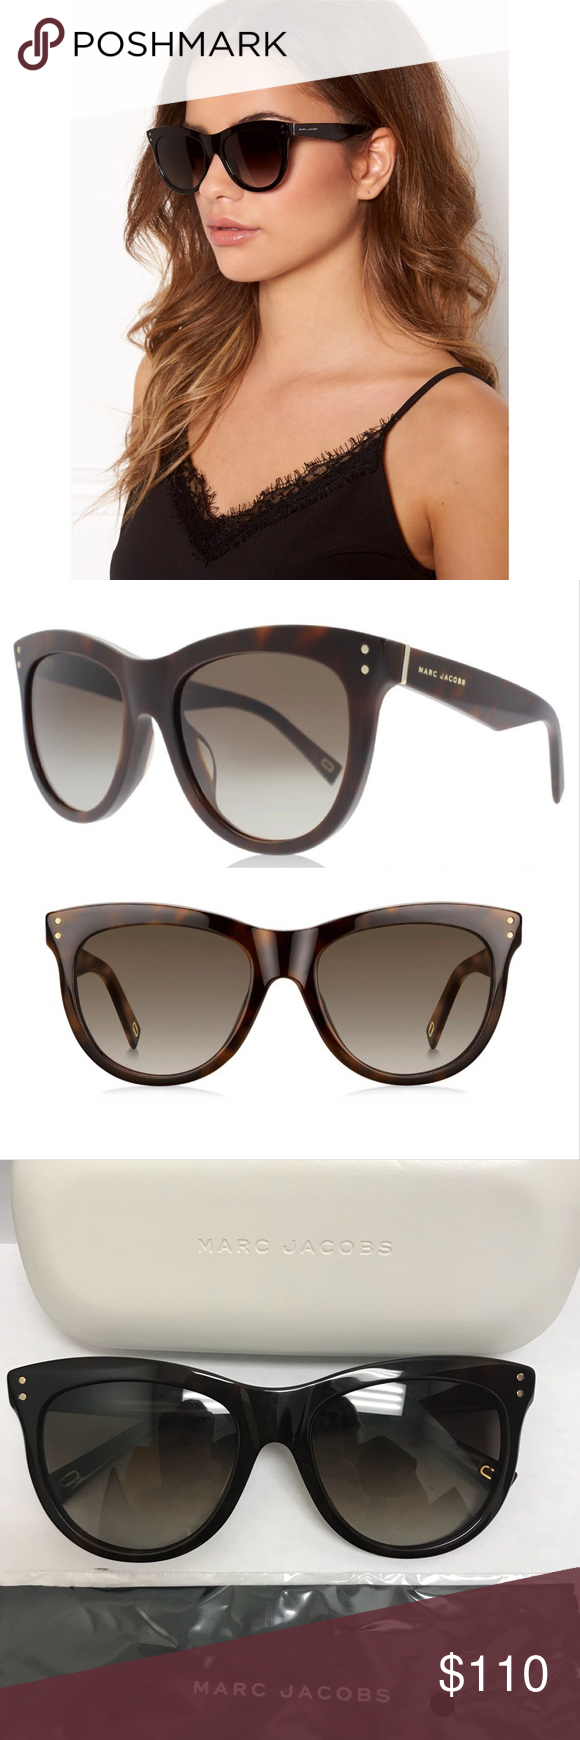 0d6da829db80 Marc Jacobs Sunglasses New. Never worn. Perfect condition. Were on display  at an